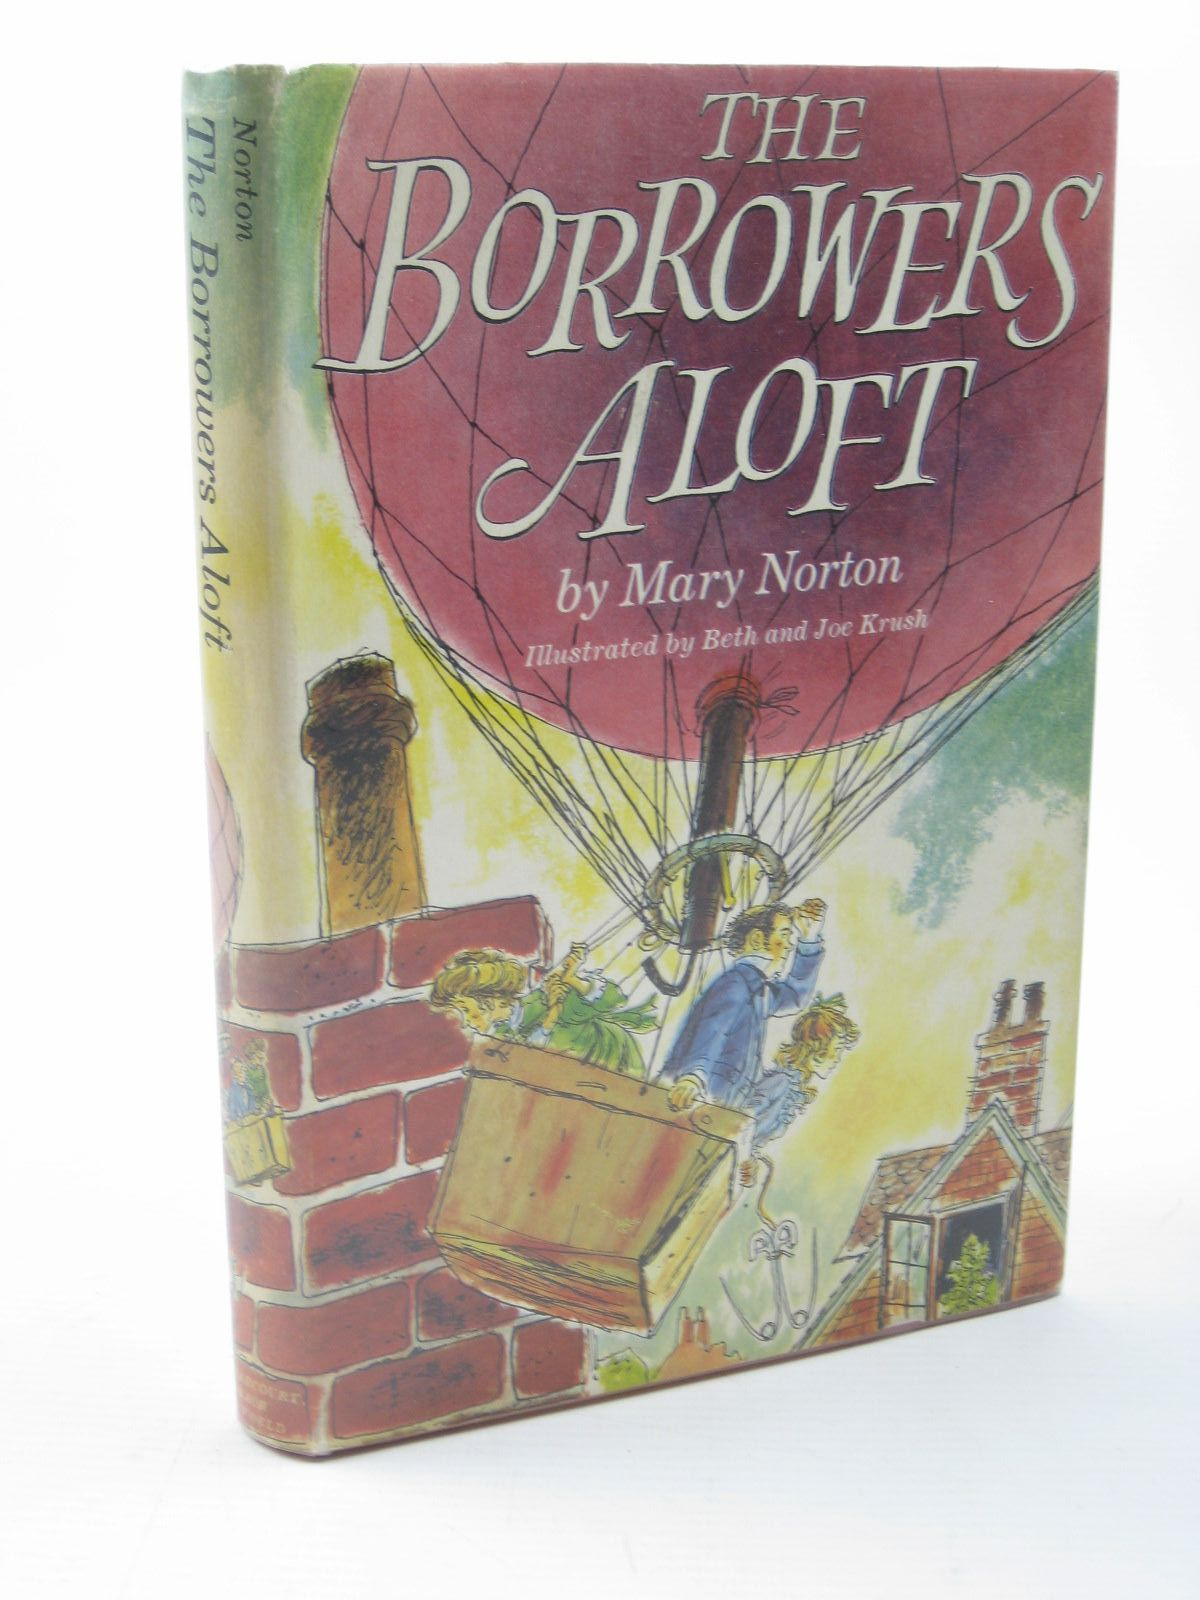 Photo of THE BORROWERS ALOFT written by Norton, Mary illustrated by Krush, Beth Krush, Joe published by Harcourt, Brace & Company (STOCK CODE: 1312716)  for sale by Stella & Rose's Books